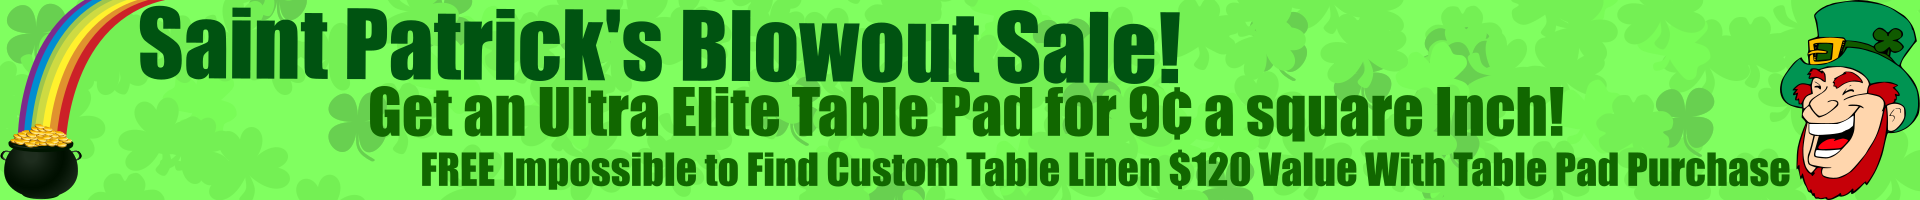 Valentines Day Special - Get An Ultra Elite Table Pad For 8 Cents A Square Inch